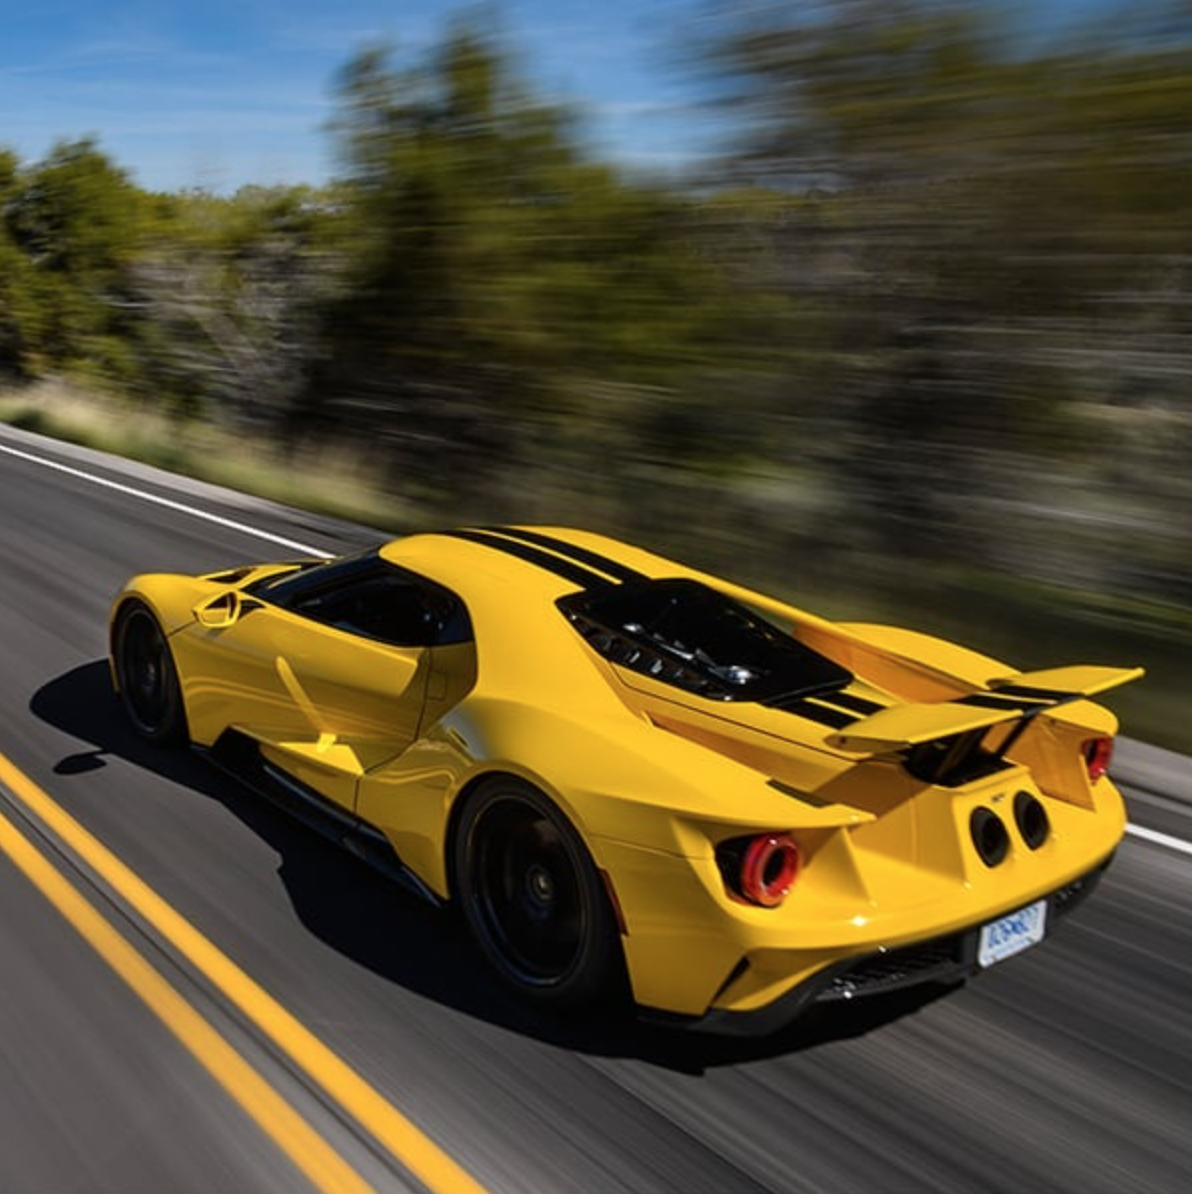 Ford Gt We Are Big Fans Of This Ford Fordgt Sportscar